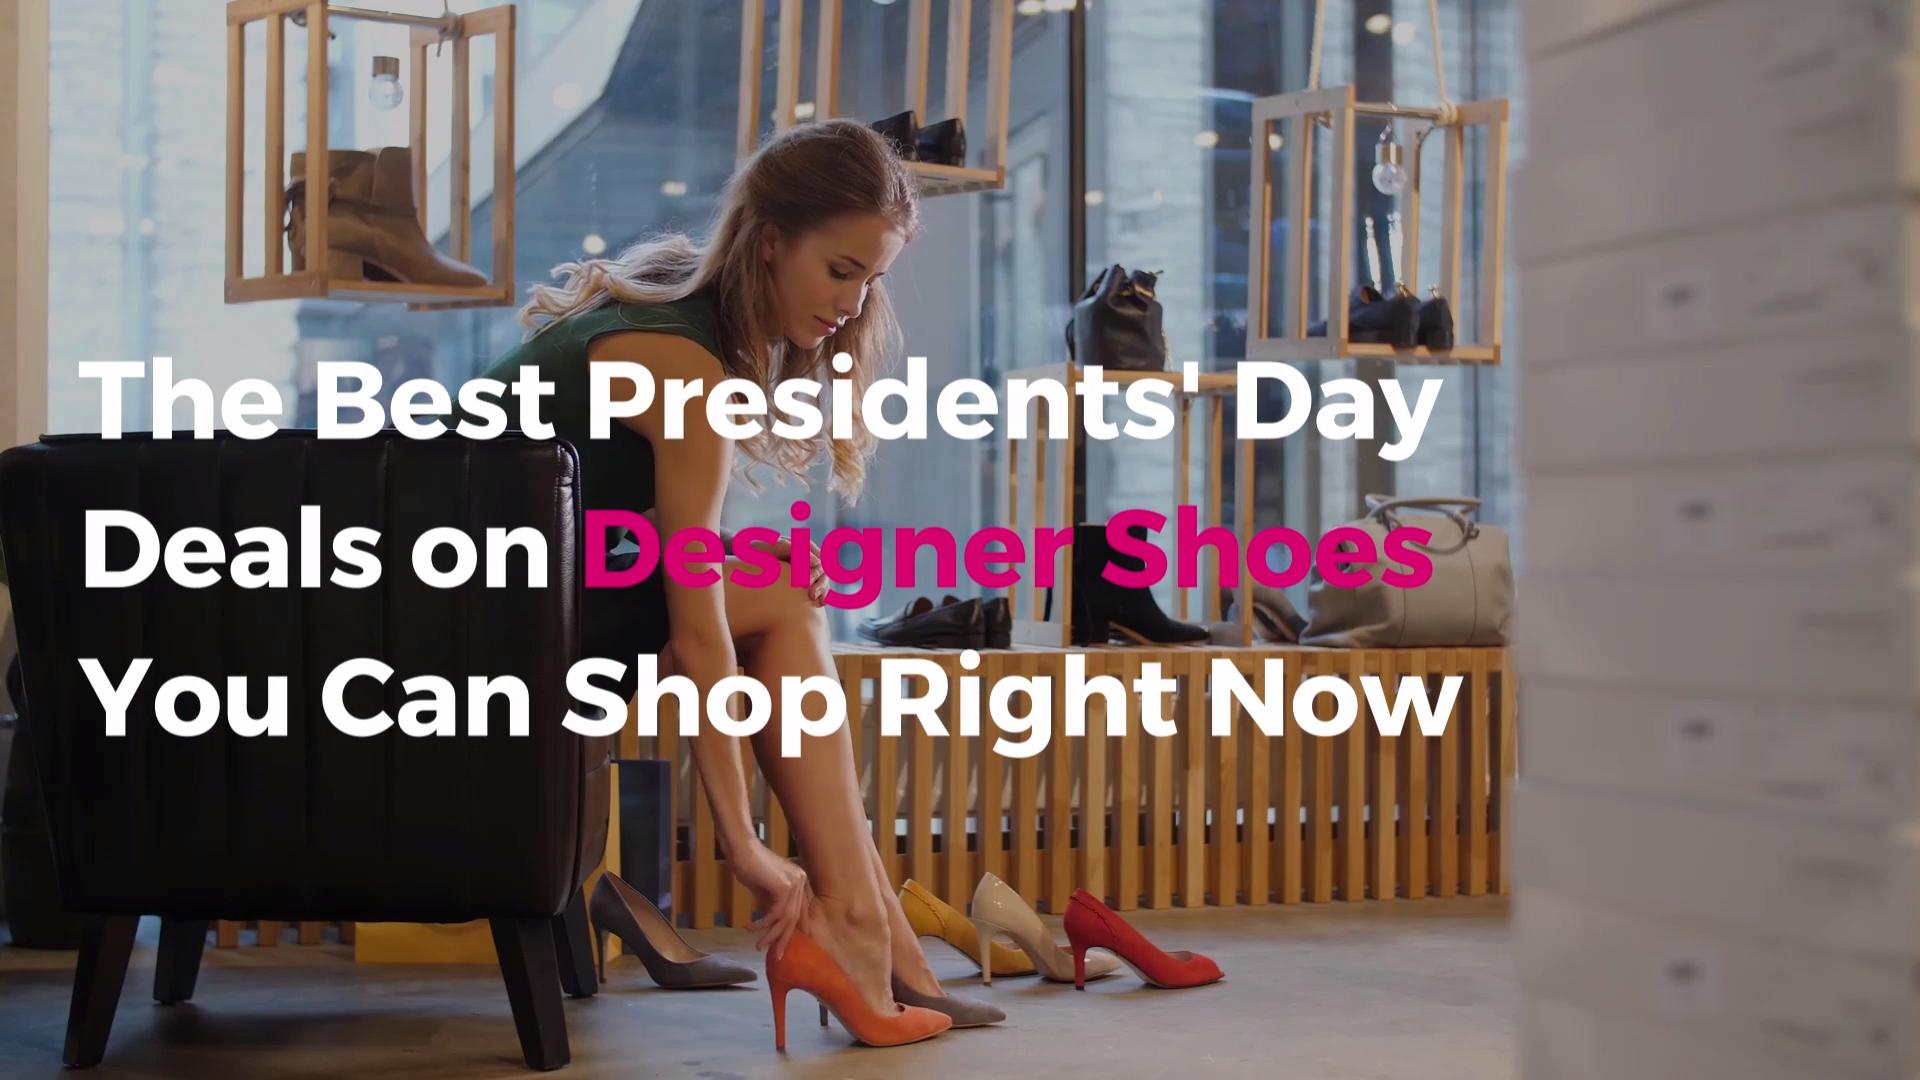 The Best Presidents' Day Deals on Designer Shoes You Can Shop Right Now